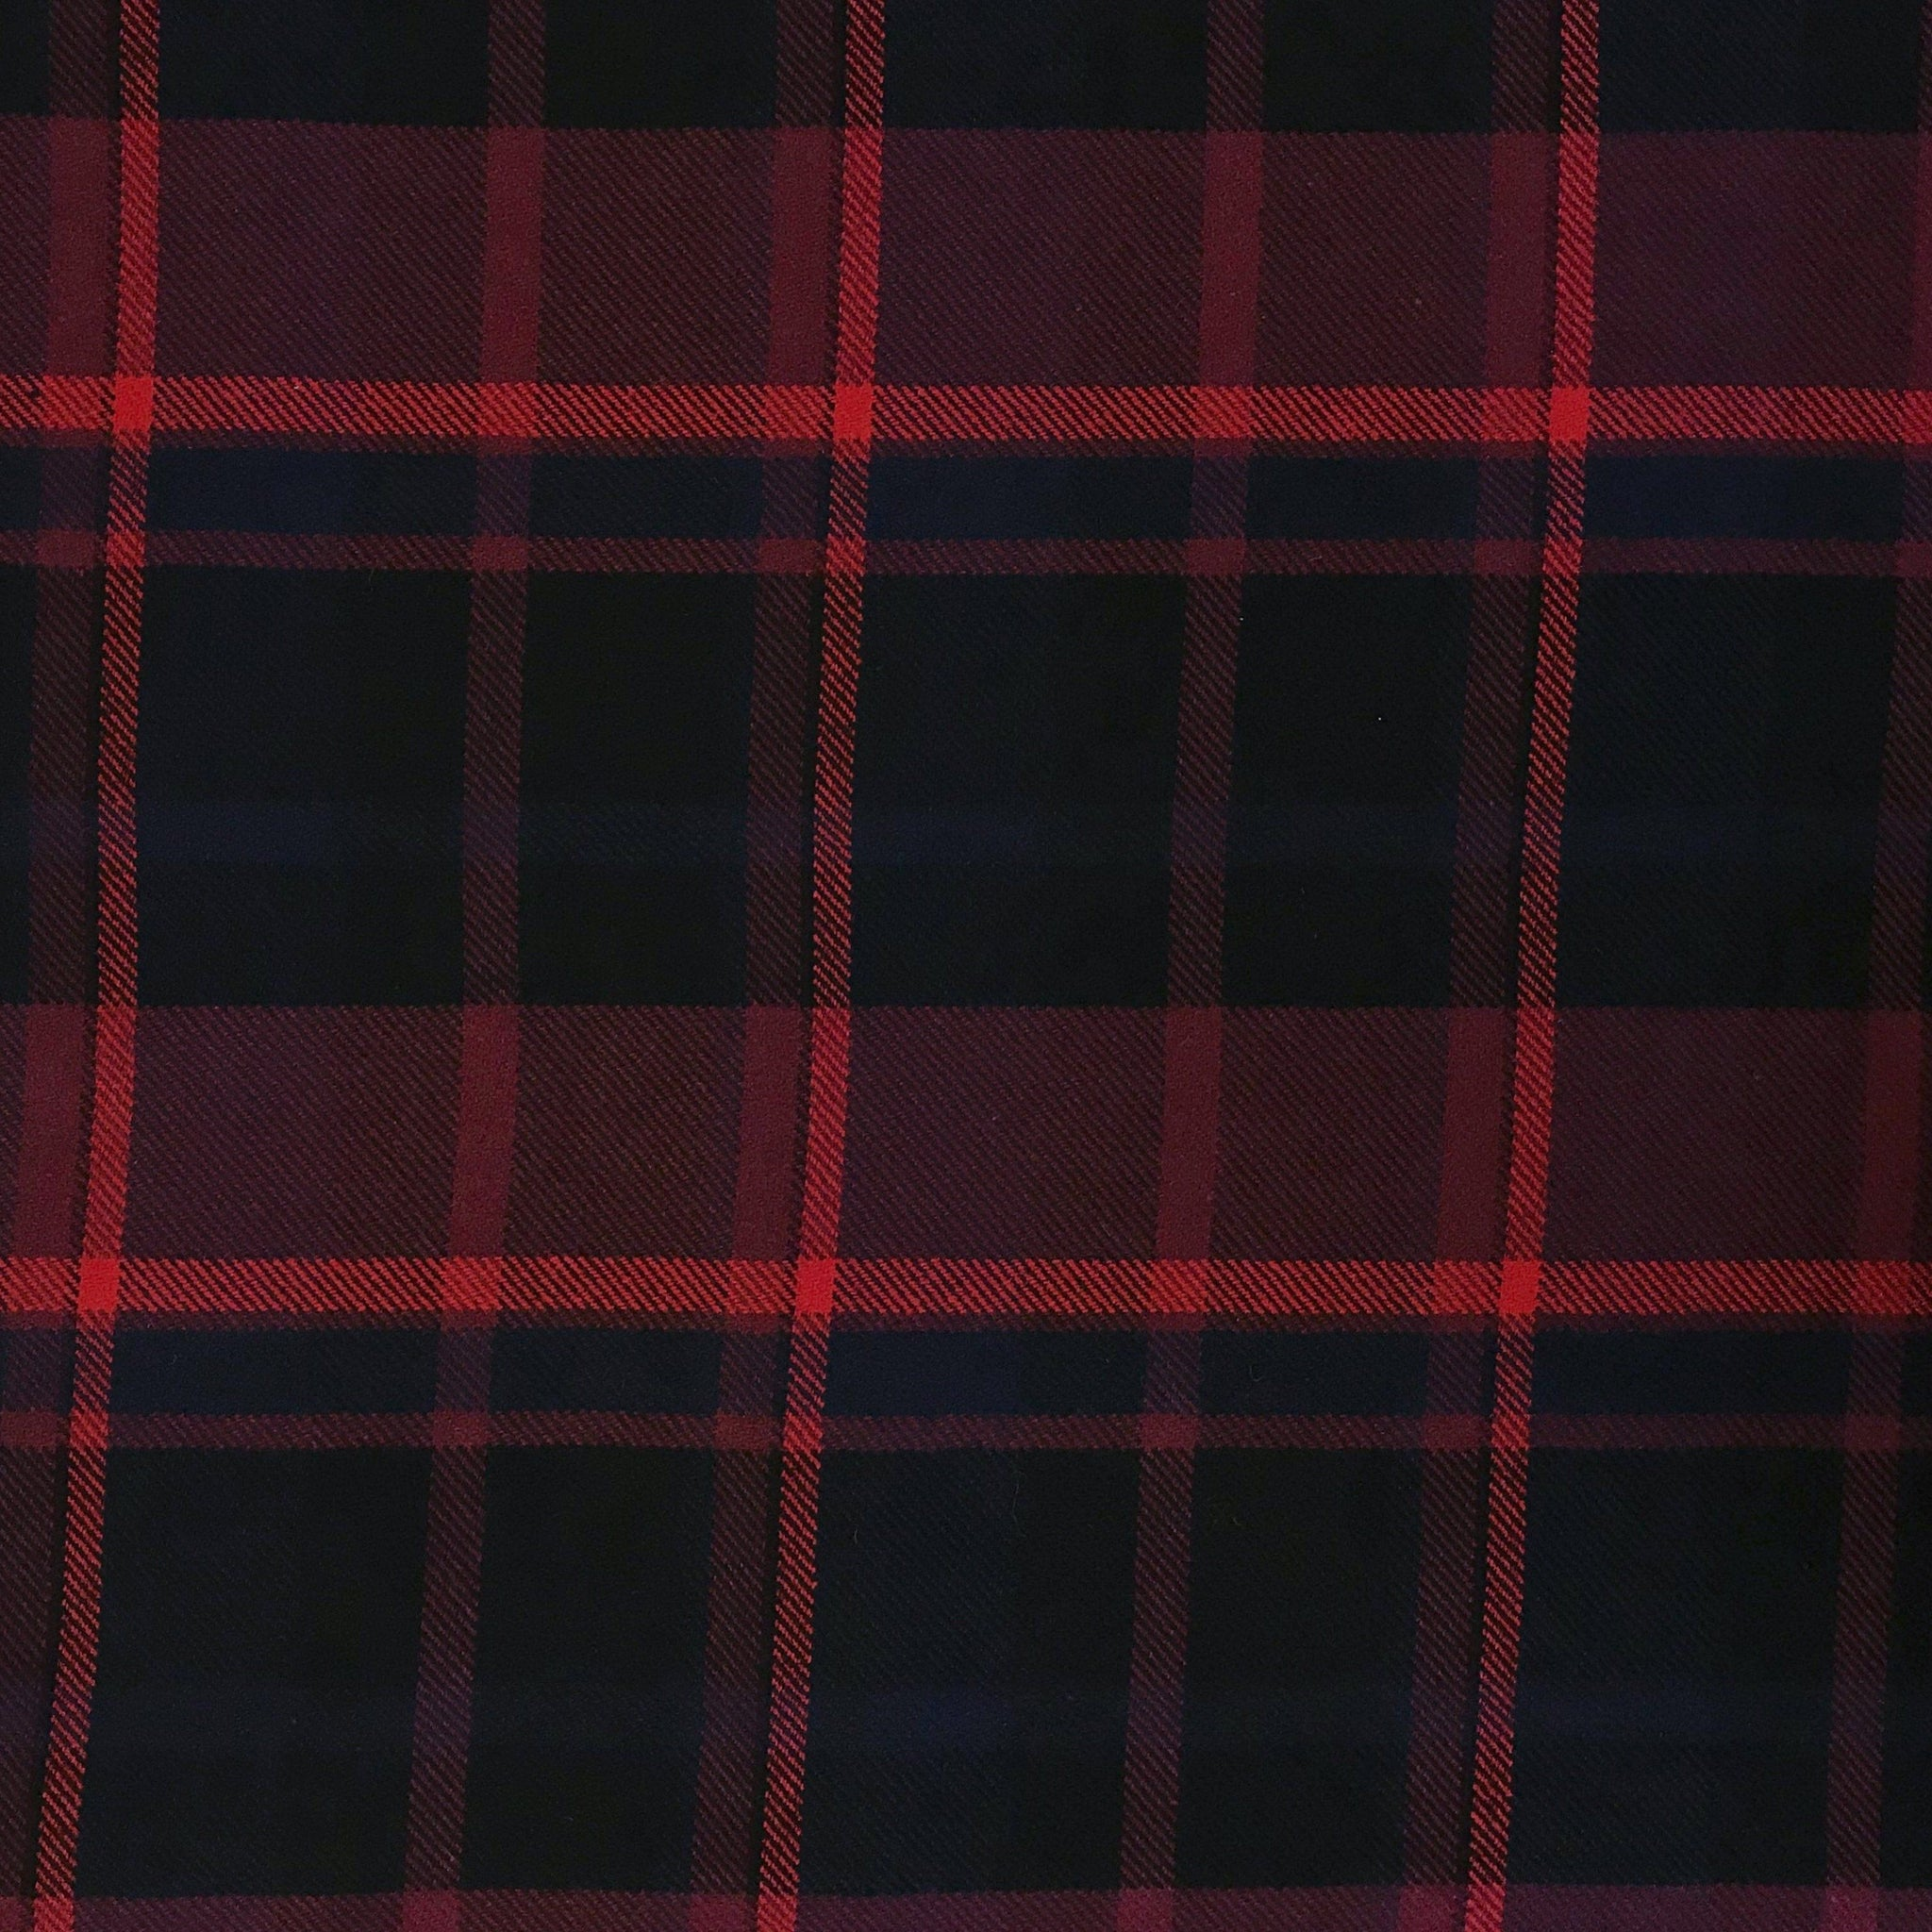 Blue/Red Check Wool Blend Fabric